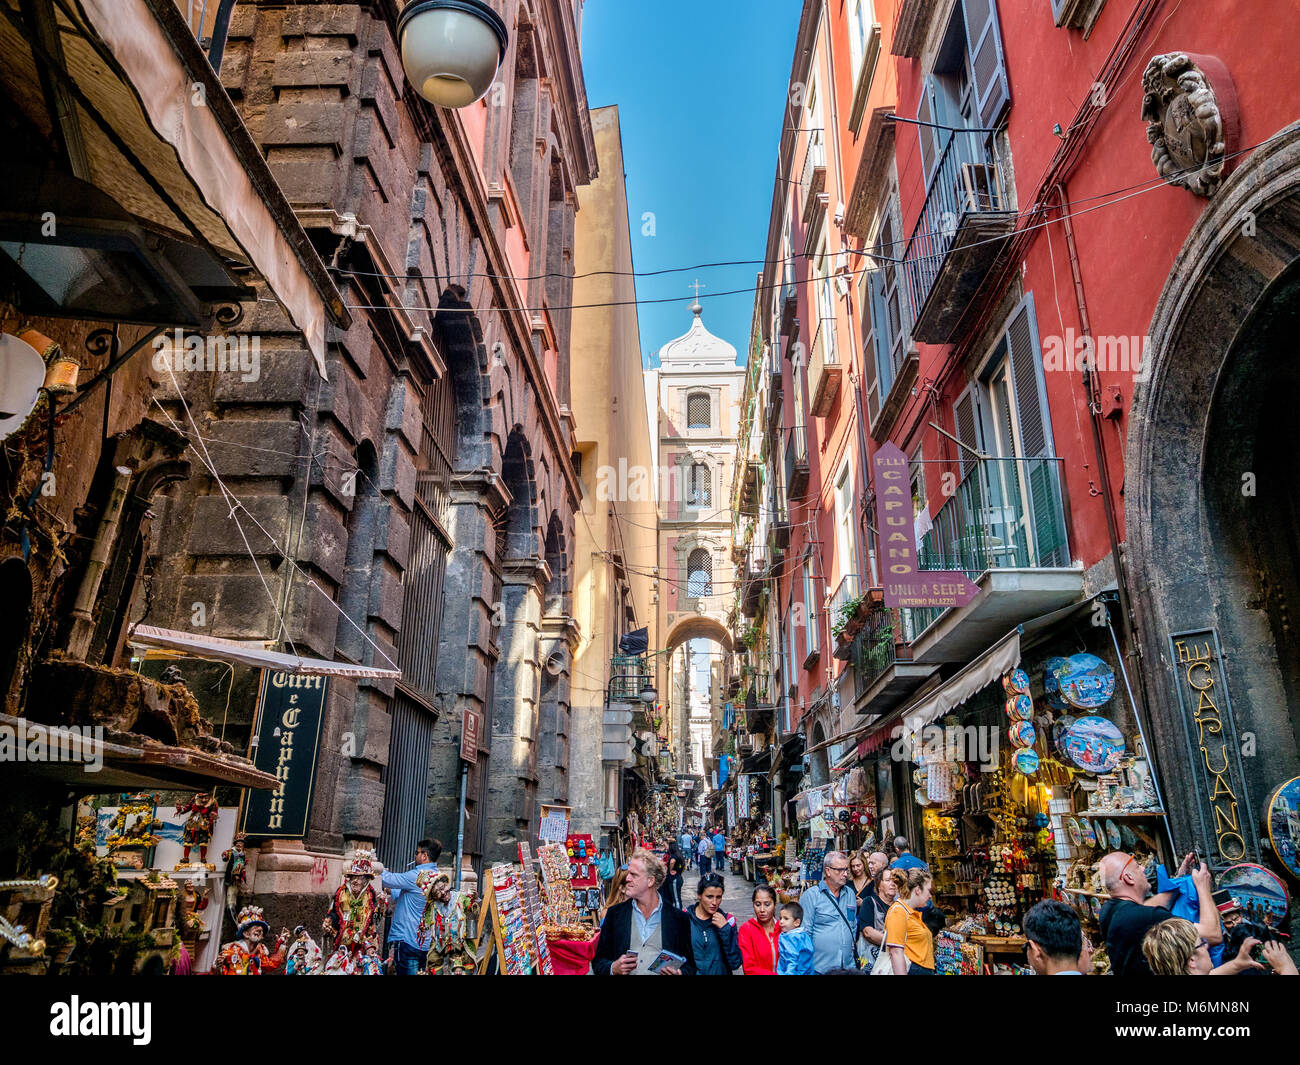 Narrow tourist street with gift shops in Naples, Italy. - Stock Image